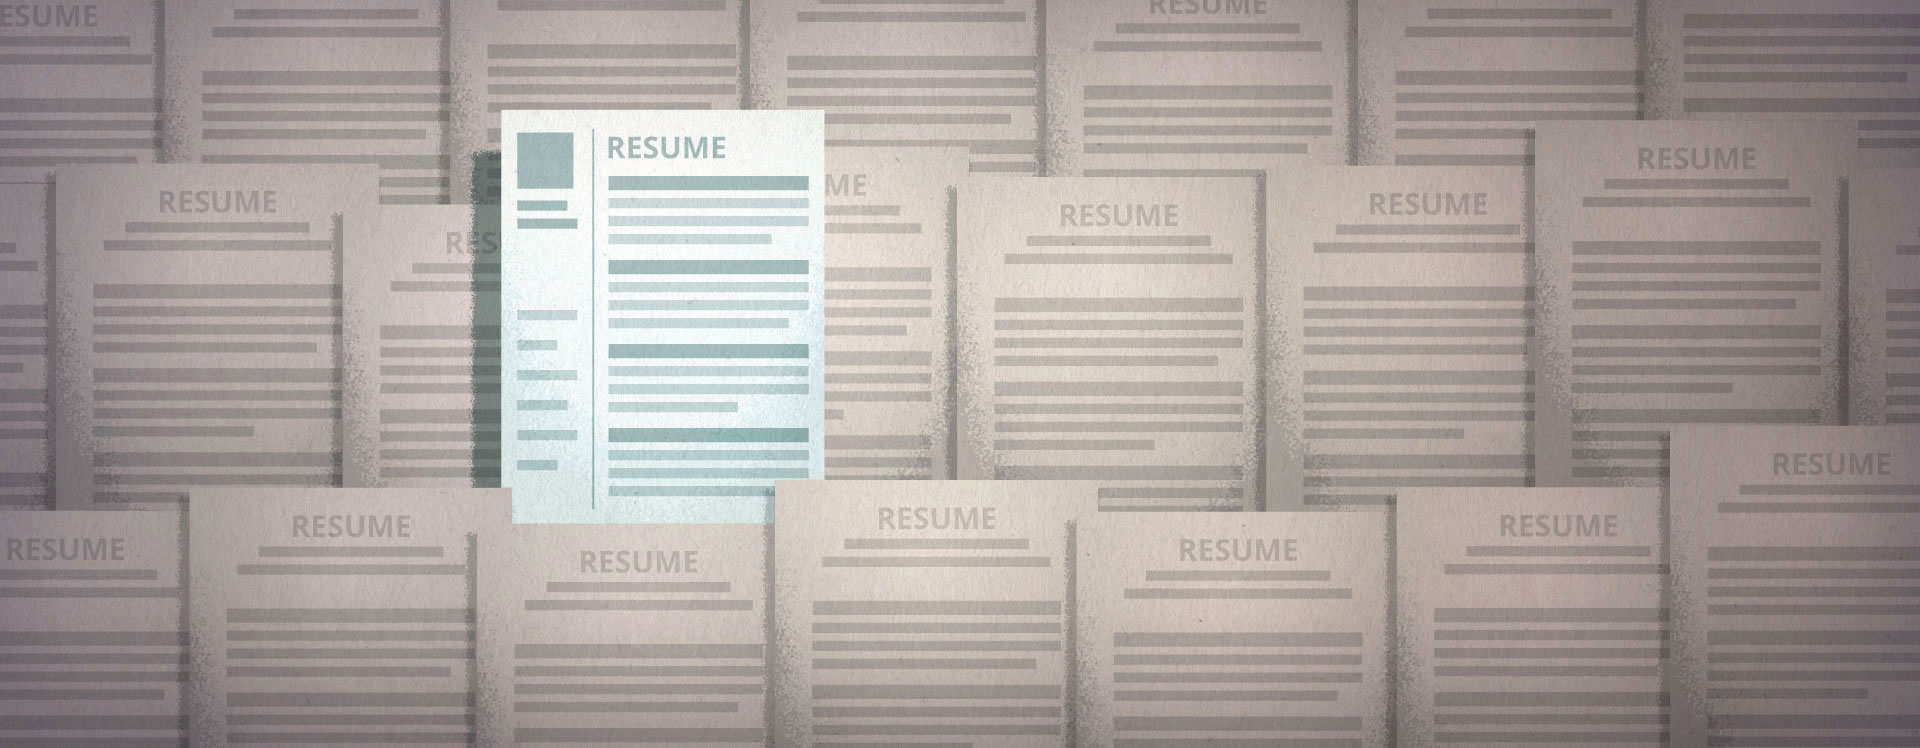 to write the perfect health information resume and cover letter core competencies make Resume Core Competencies Resume 2017